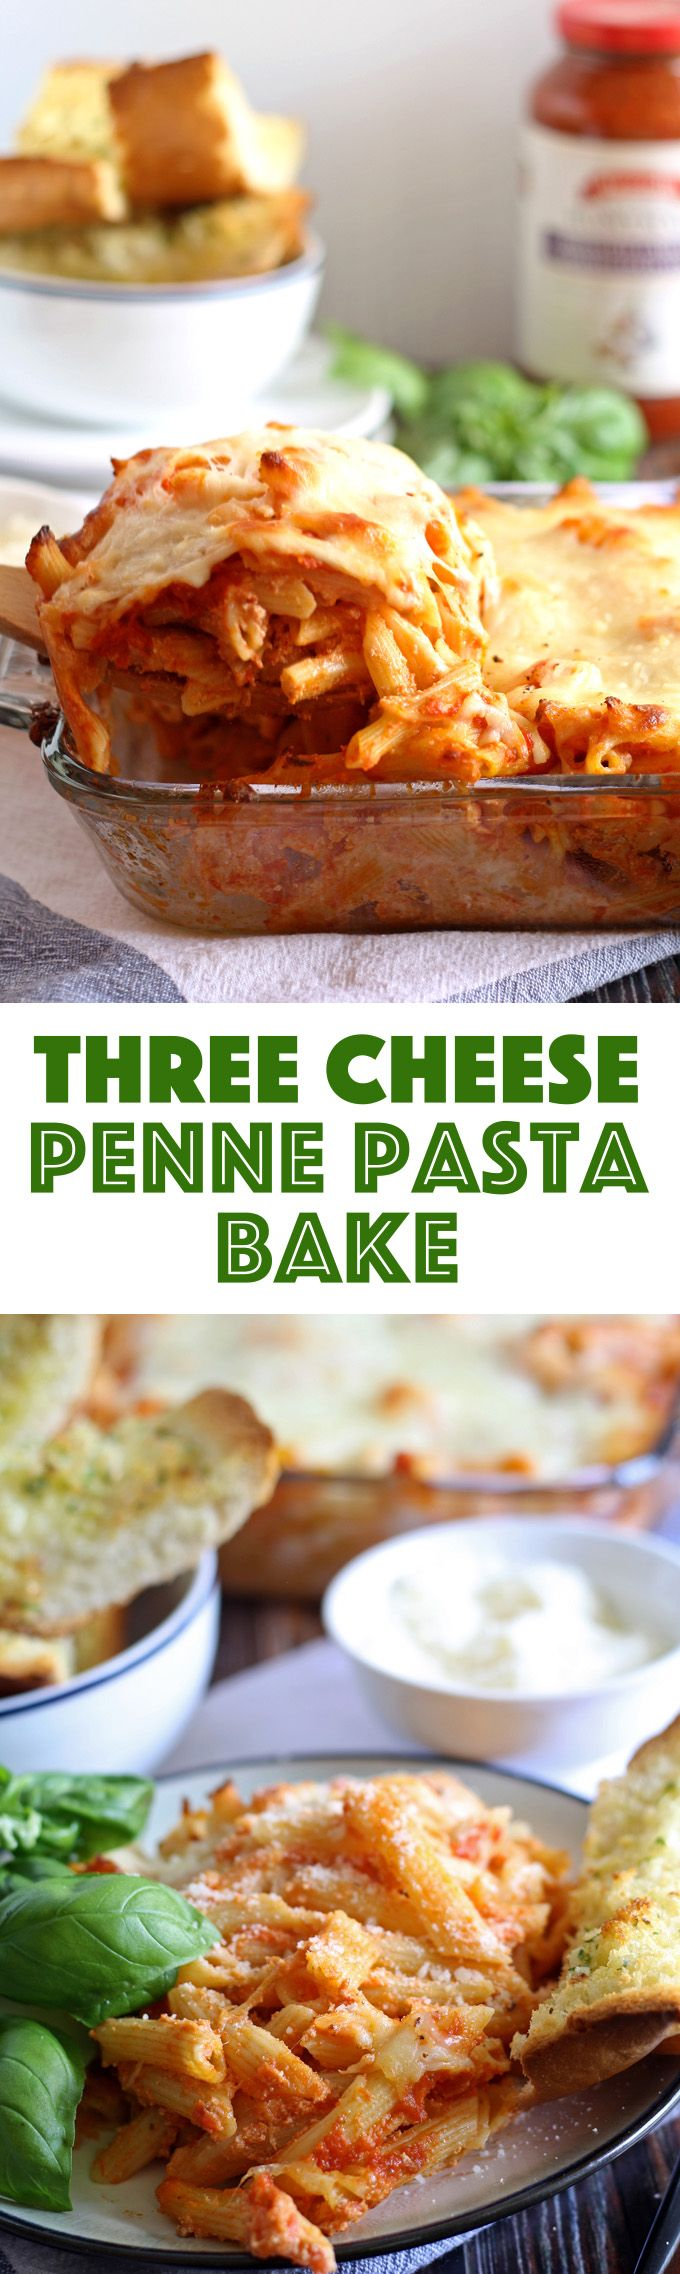 This three cheese penne pasta bake is perfect for family meals! Get dinner on the table quickly and serve with a side salad and garlic bread. | honeyandbirch.com  https://ooh.li/1894378 #sponsored #FallForFlavor